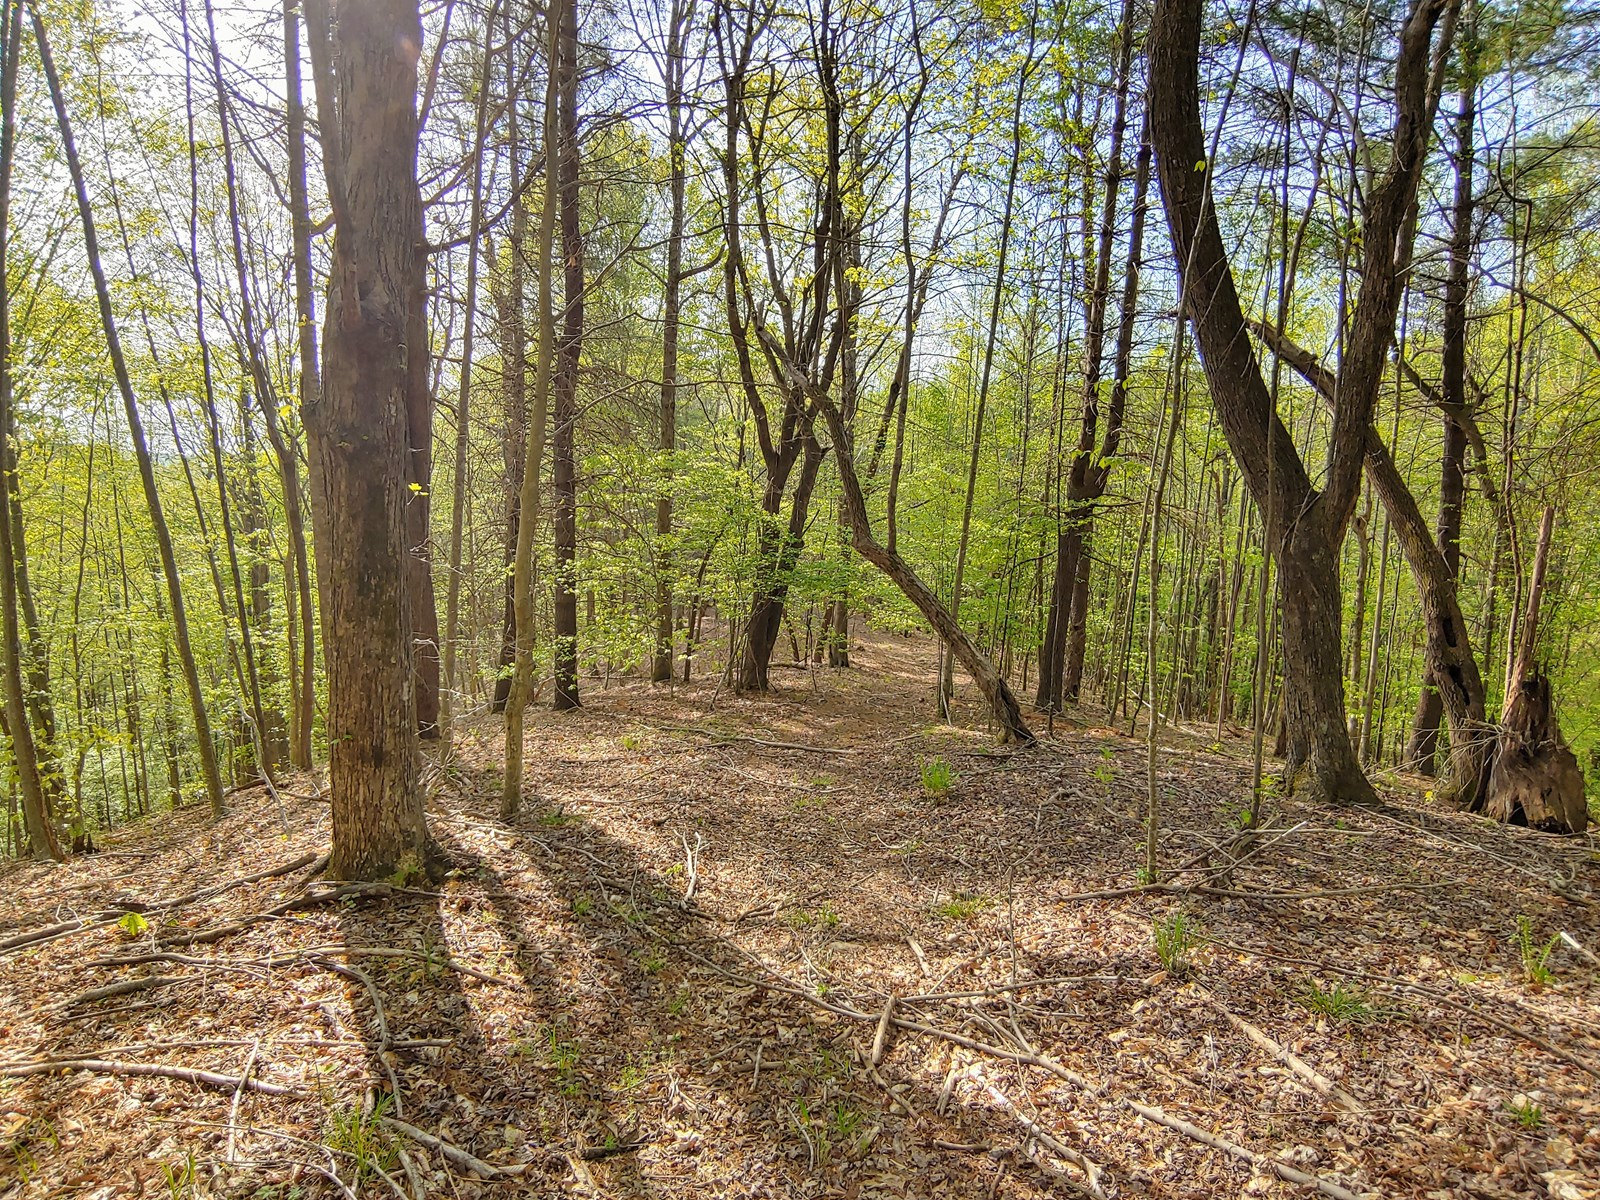 Wooded Land for Sale in Ferrum VA